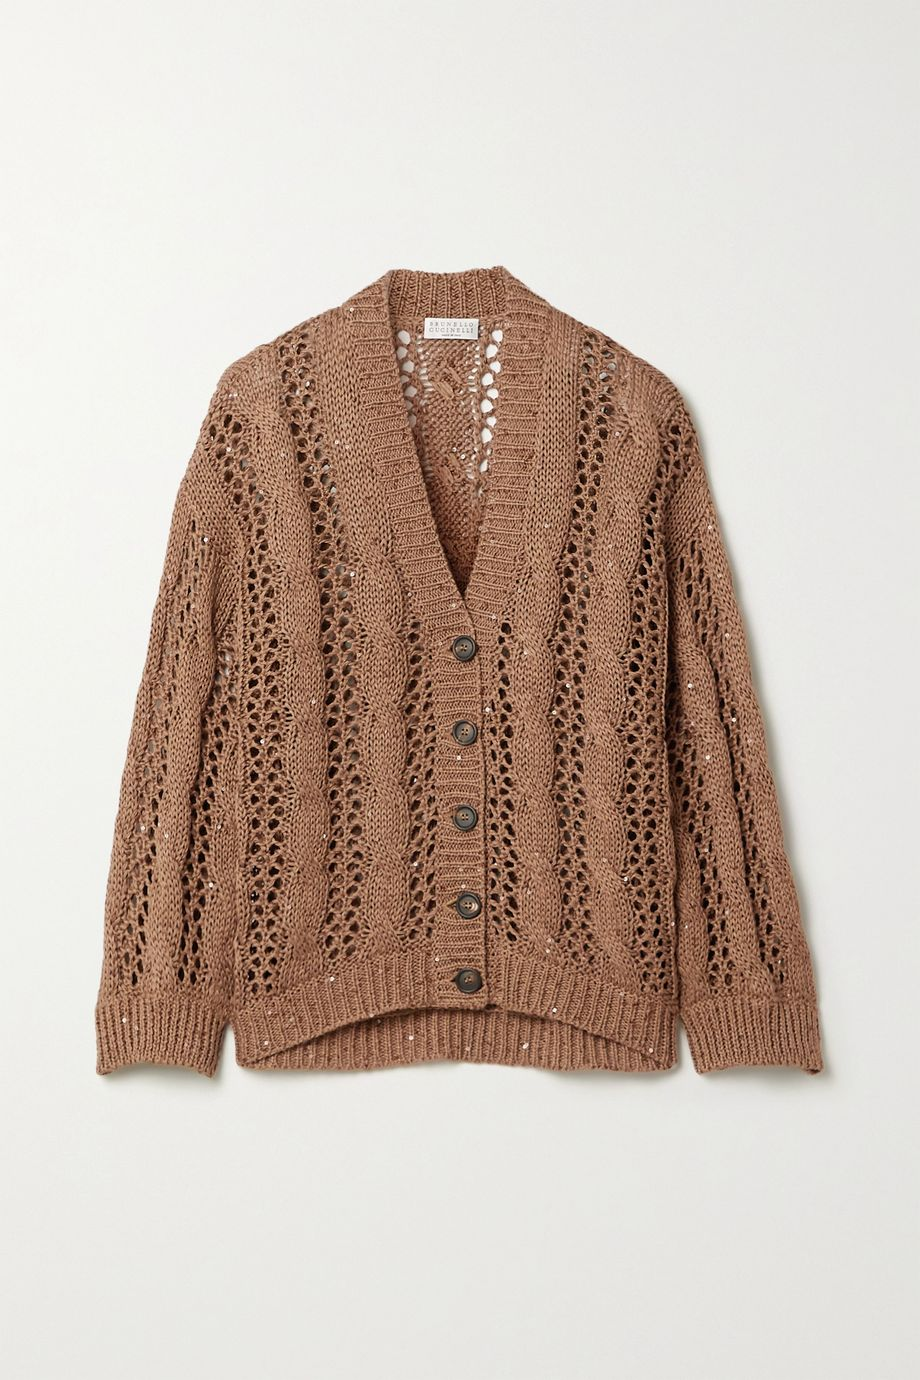 Brunello Cucinelli Sequin-embellished cable-knit cotton-blend cardigan